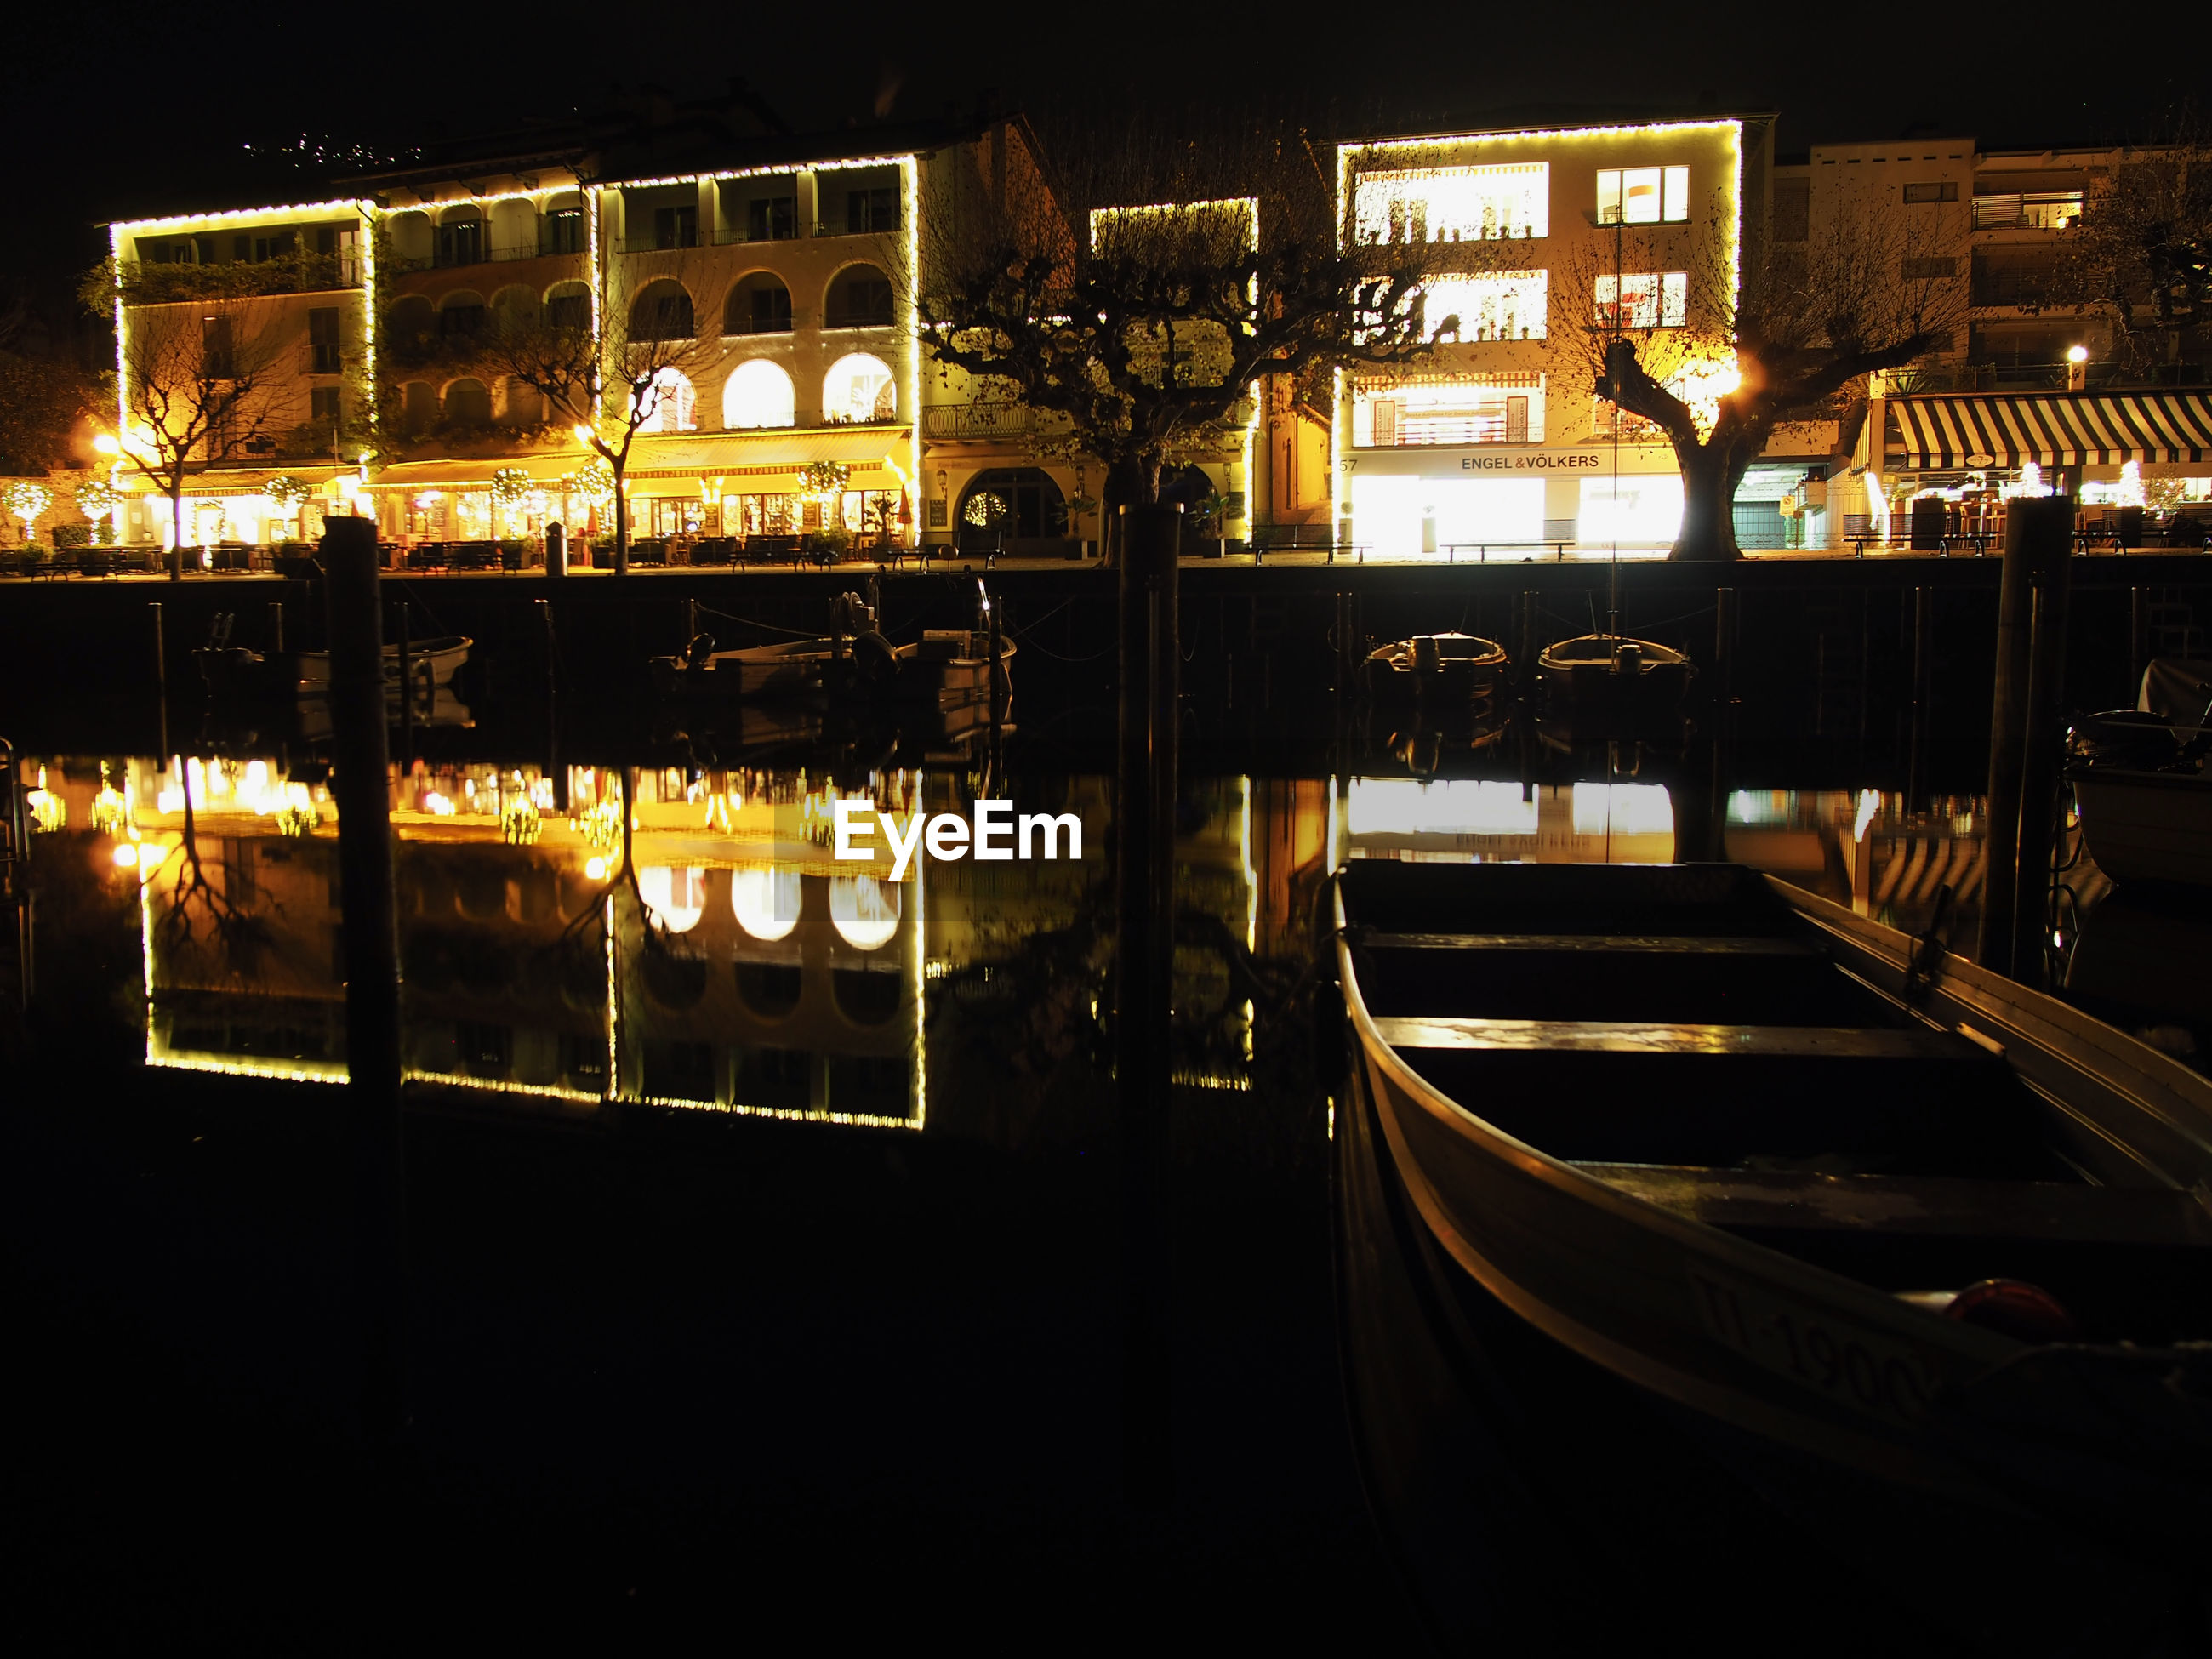 VIEW OF BOATS MOORED IN ILLUMINATED CITY AT NIGHT